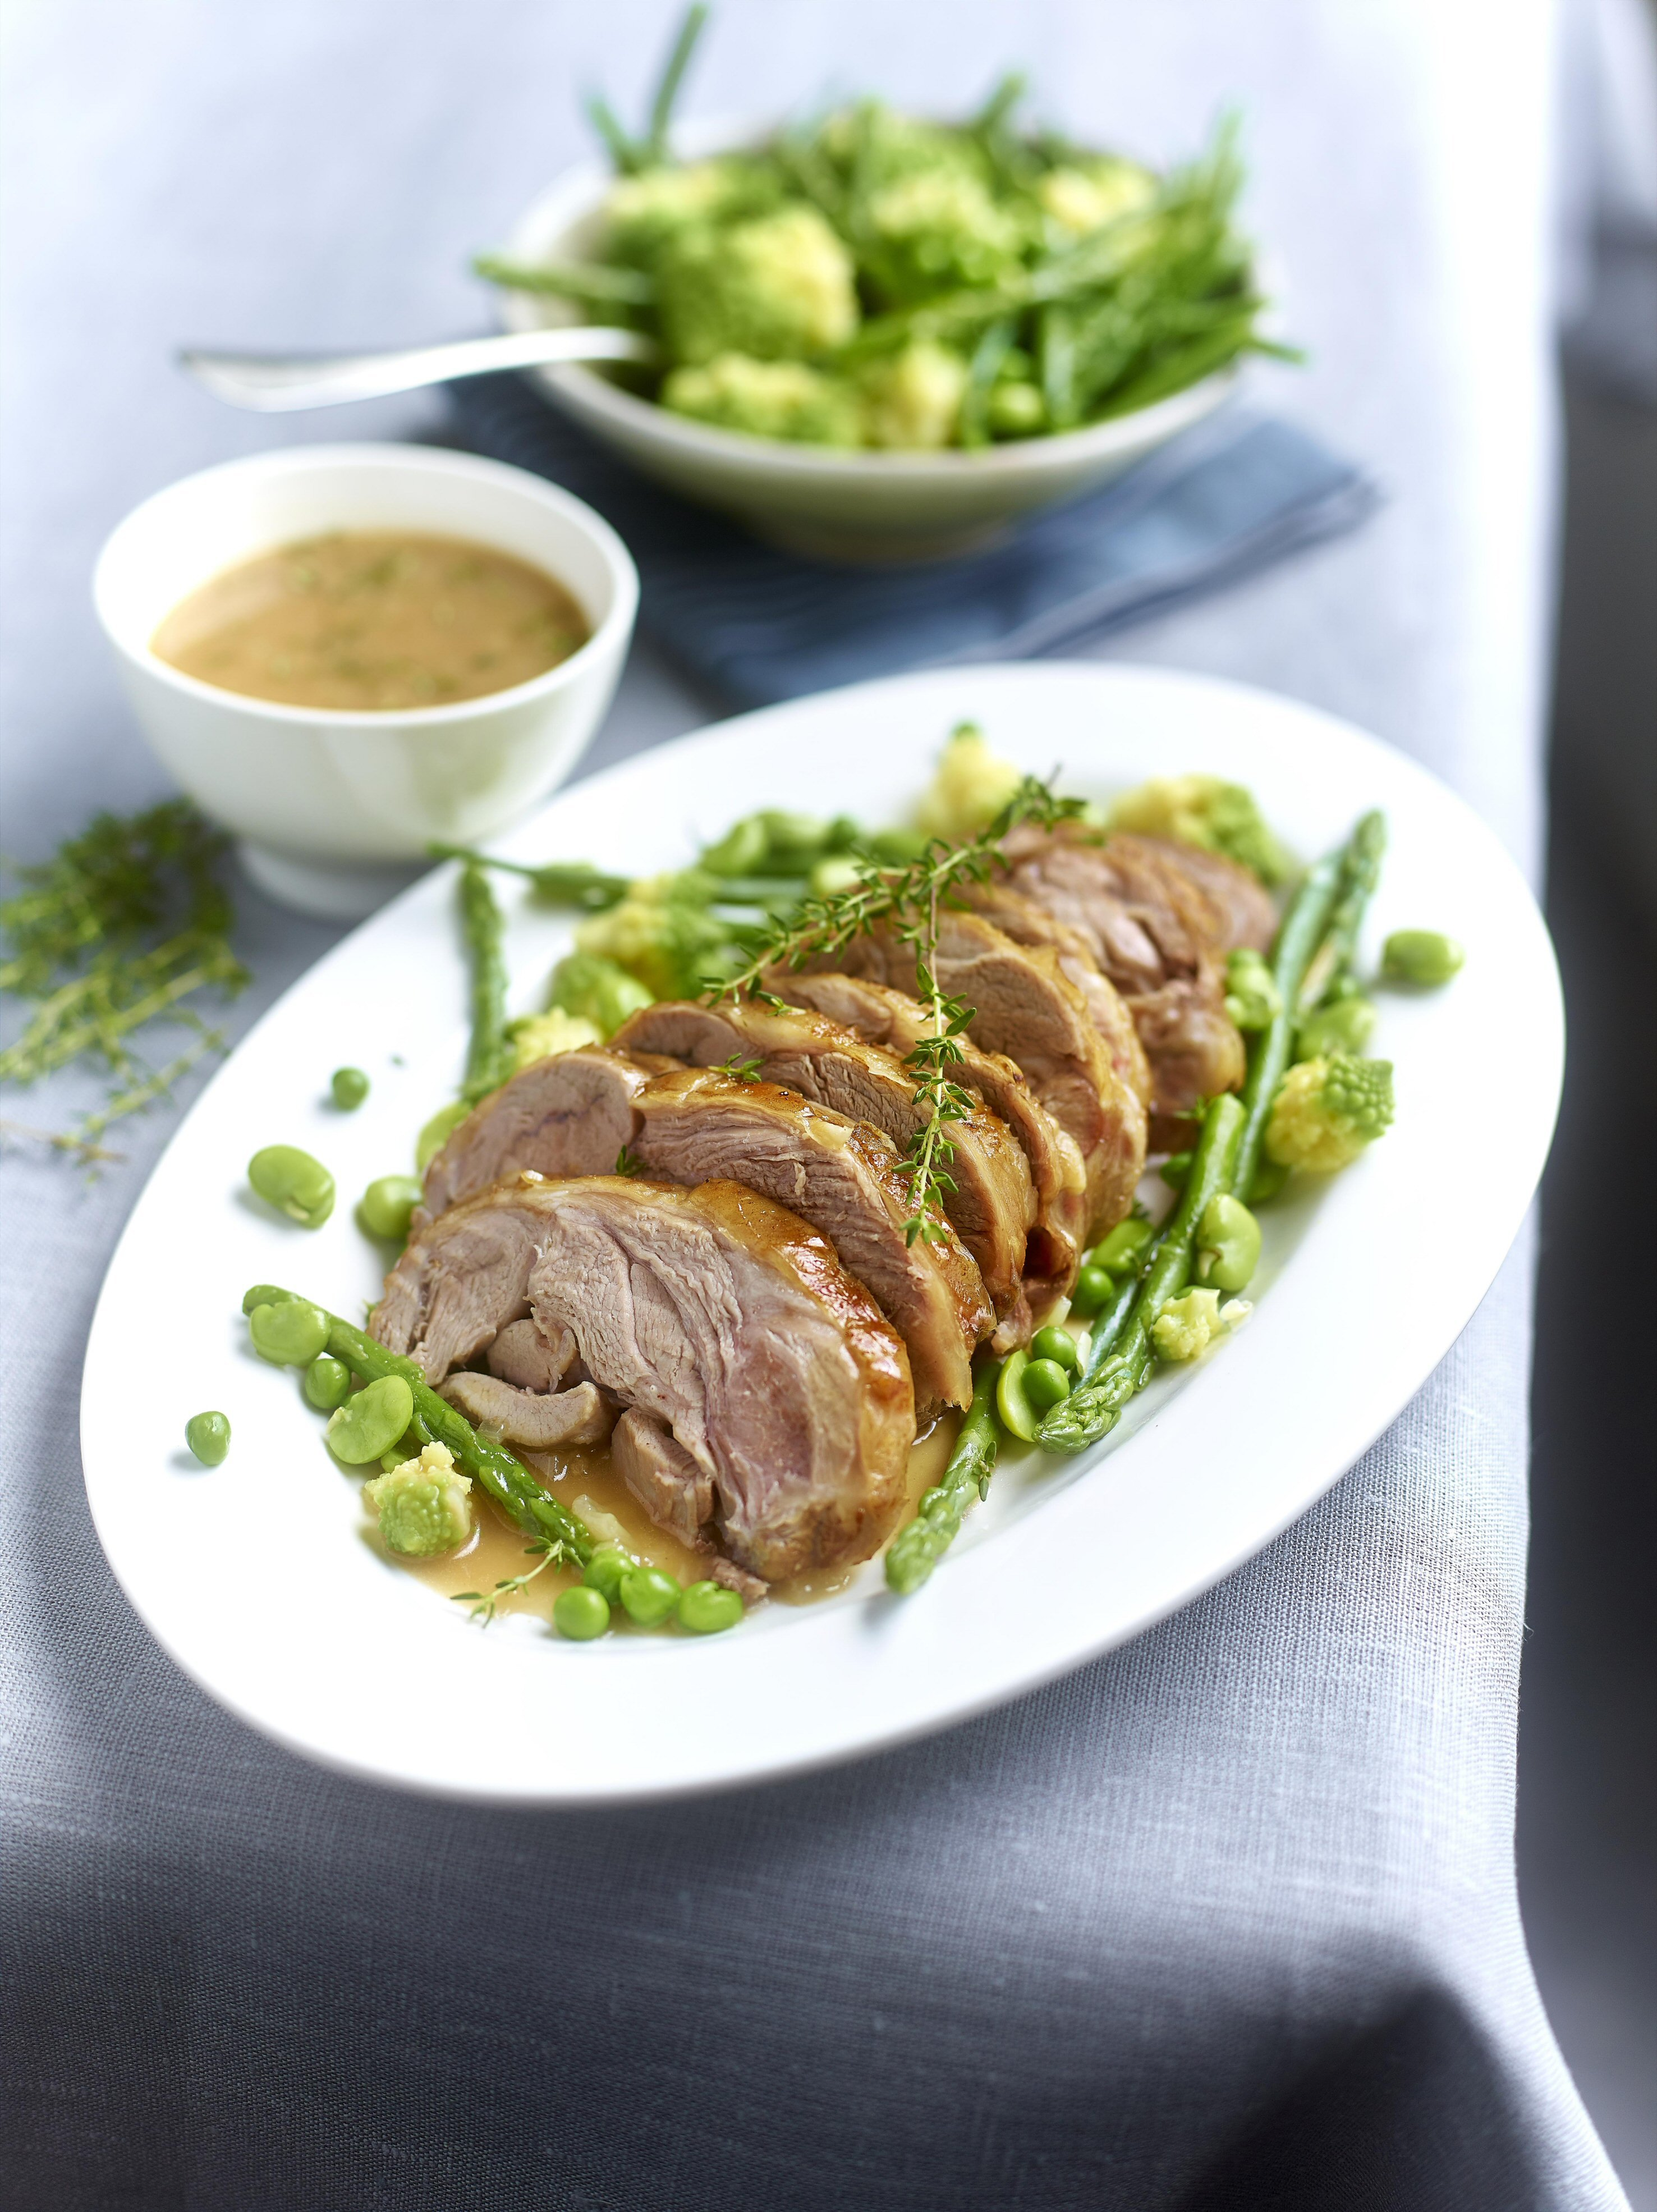 Weekend Family Roast Lamb with Thyme and Spring Vegetables Recipe